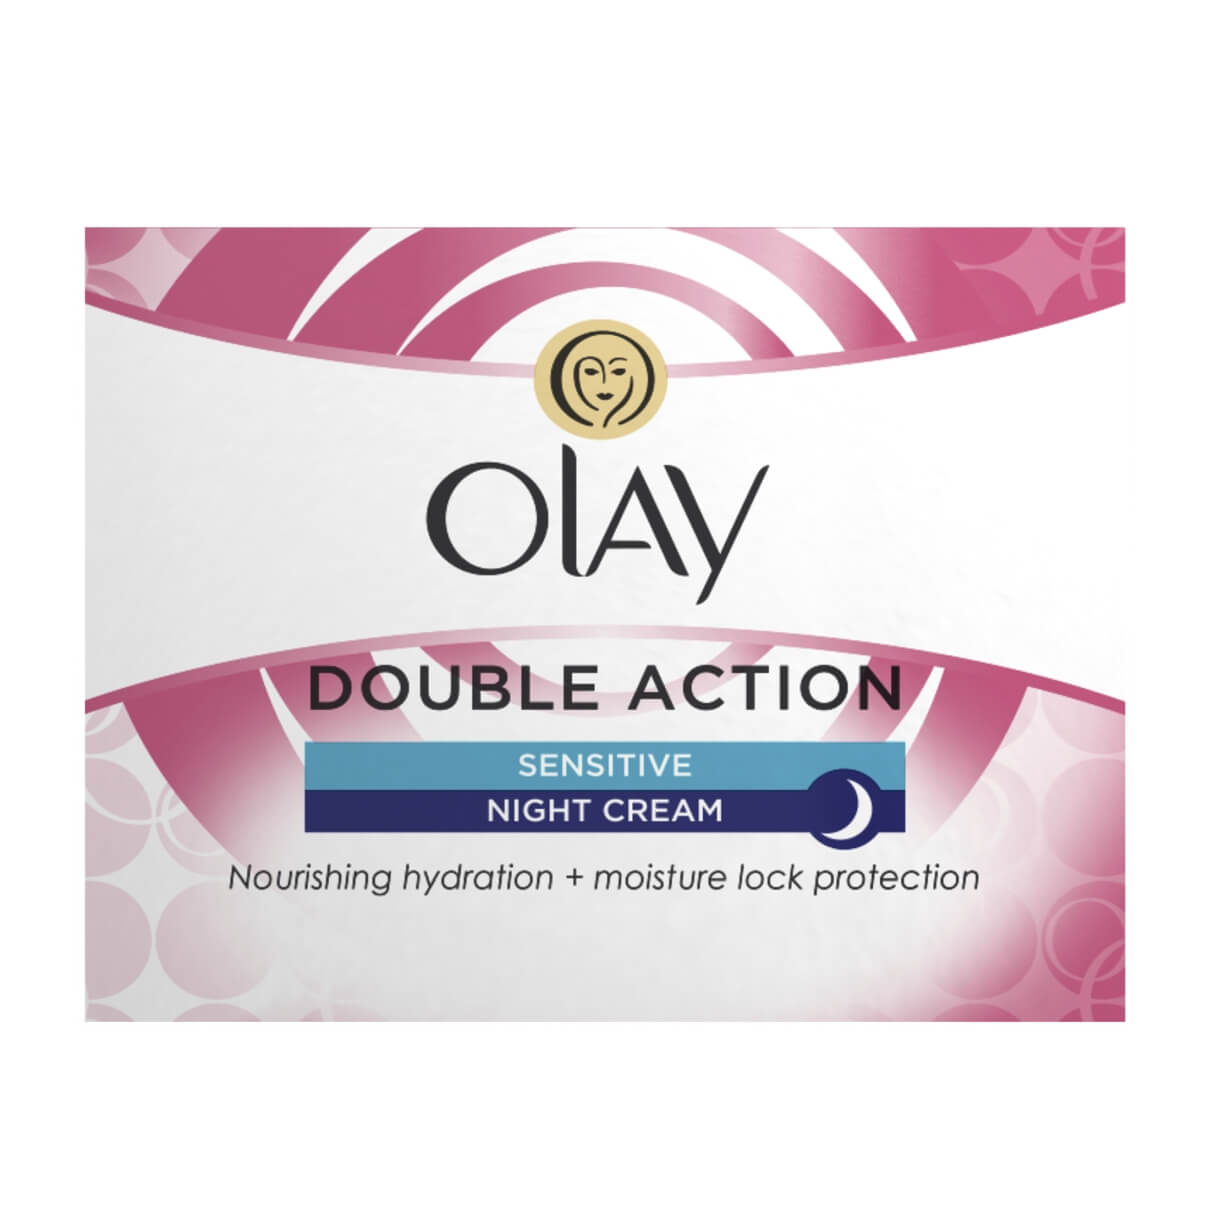 Olay Essentials Double Action Night Cream for Sensitive Skin